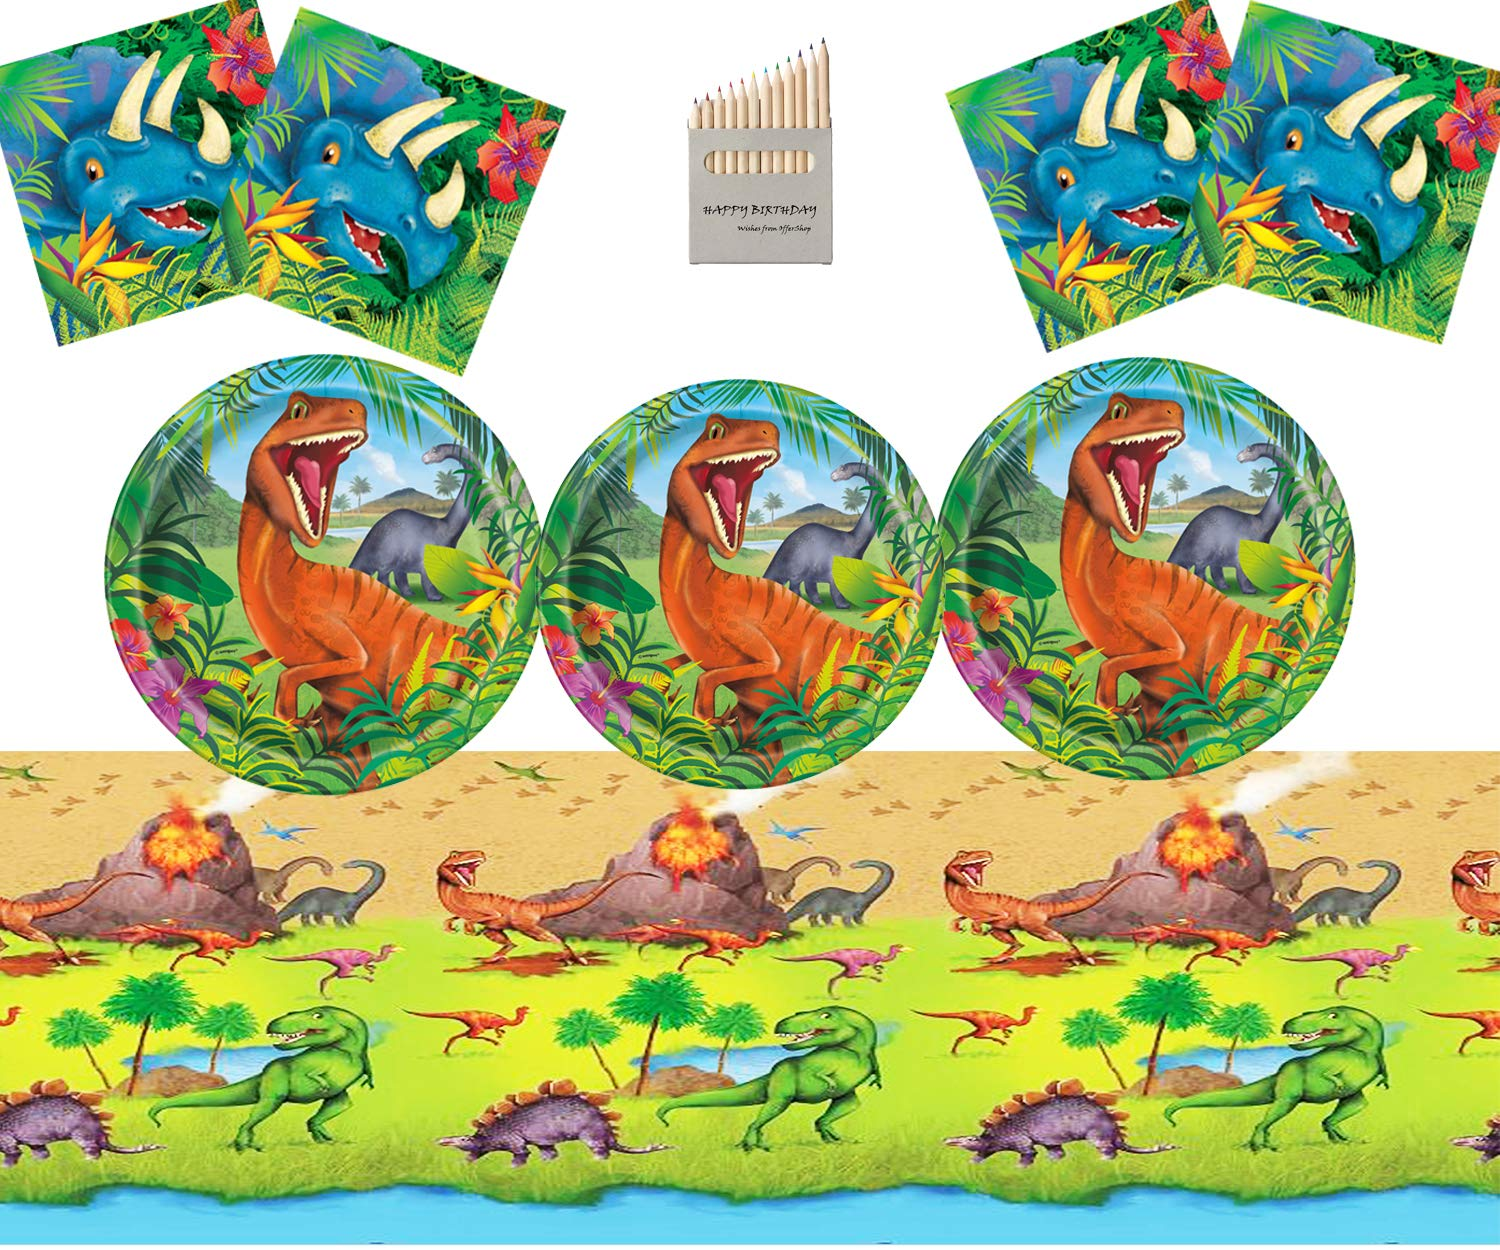 Dinosaur Party Supplies Set Dinosaur Birthday Party Decoration Kit For 16- Dino Plate Napkins Table Cover